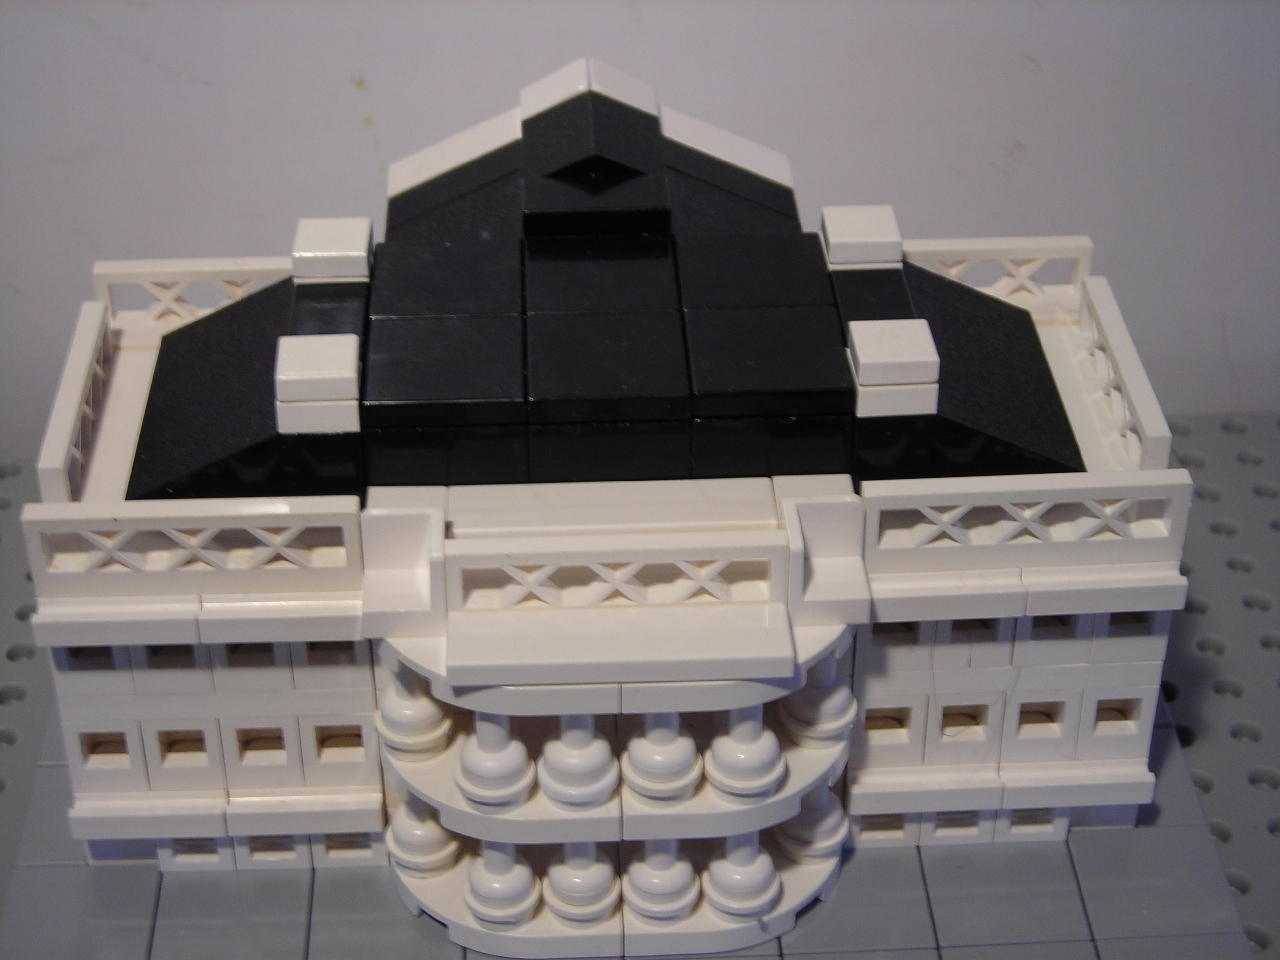 whitehouse04.jpg